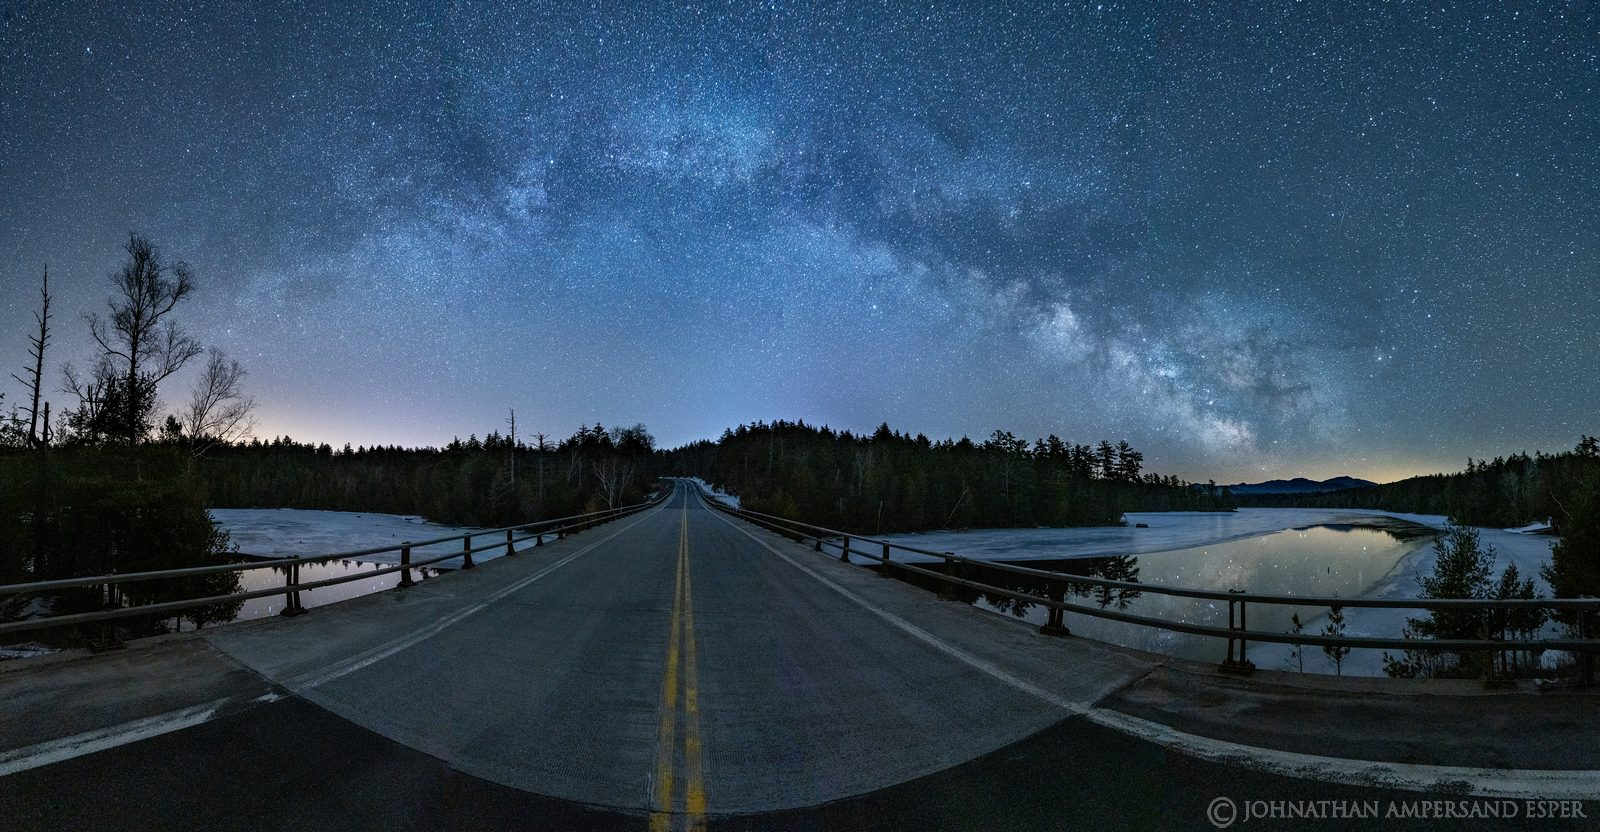 Milky Way,March,2021,Second Pond,ice,night,road,Route 3,bridge,panorama